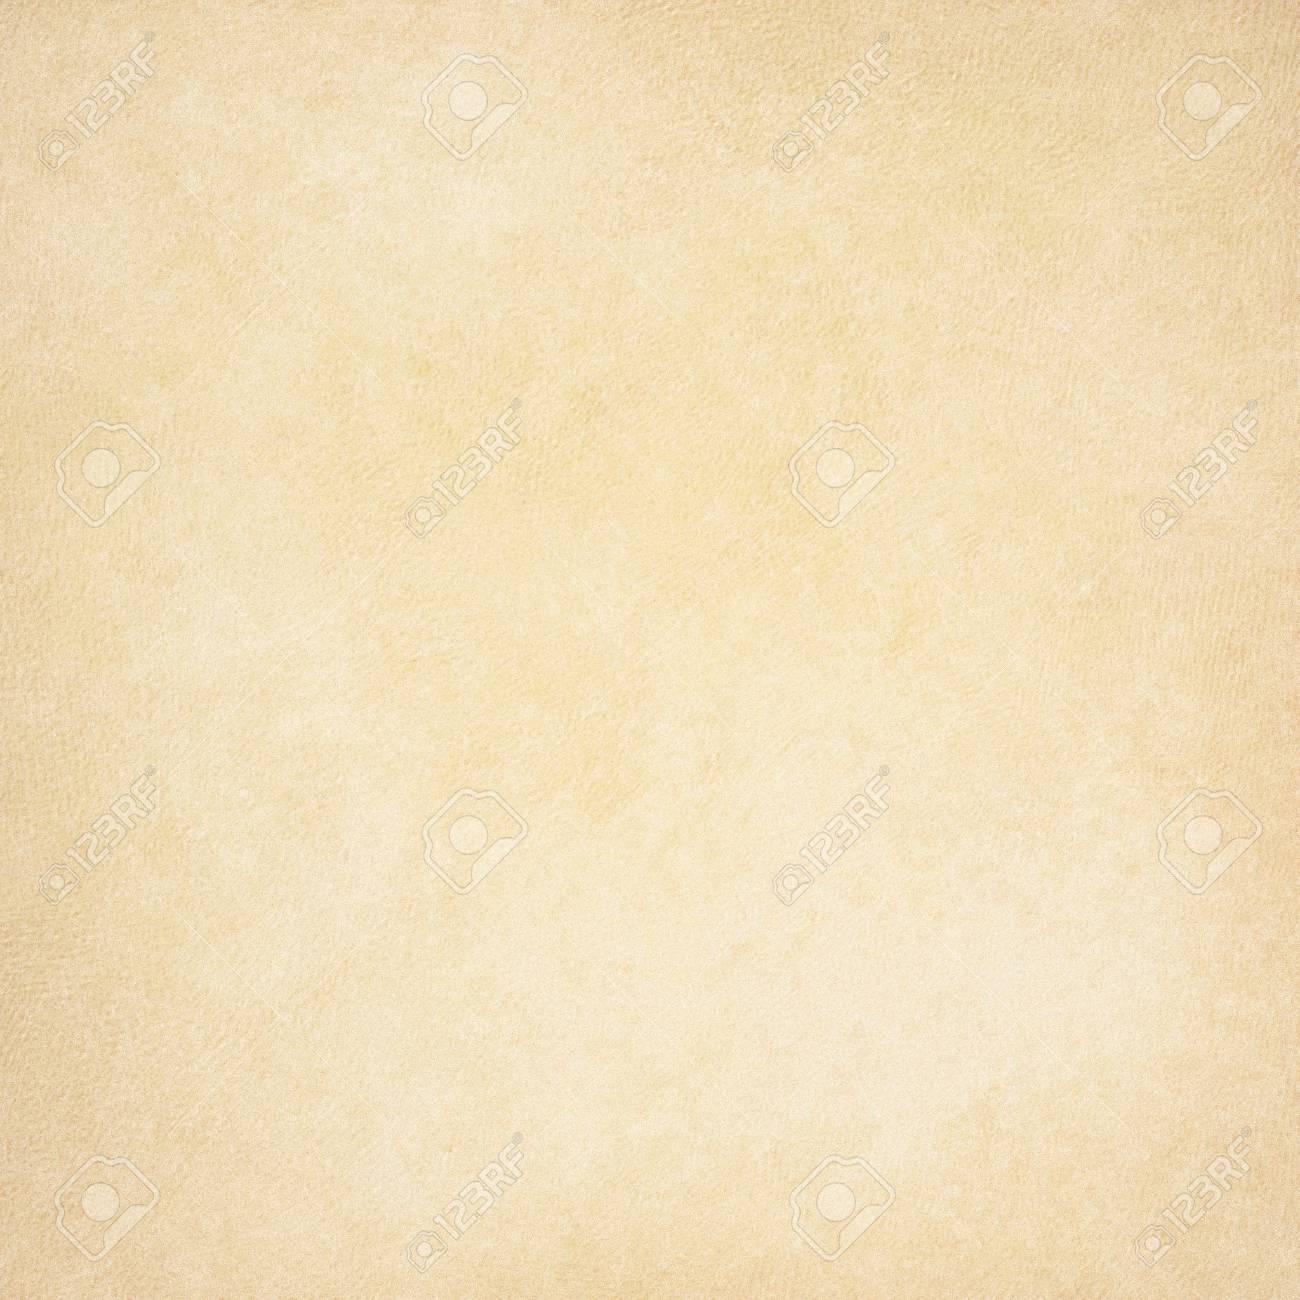 old paper background with gold brown color and vintage texture - 72507630